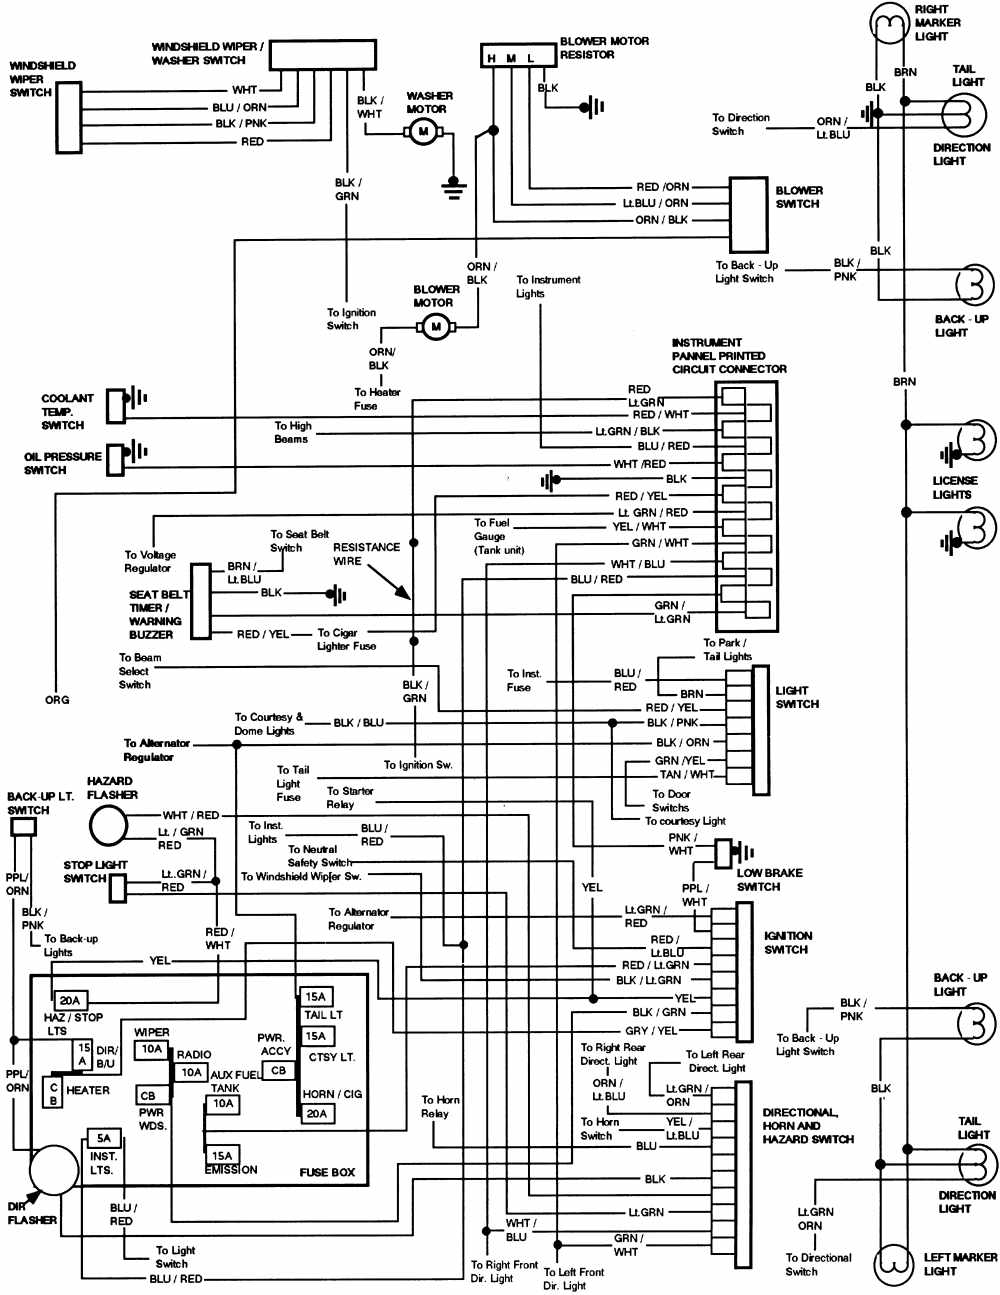 Mustang Alternator Wiring Diagram On 90 Mustang Radio Wiring Diagram